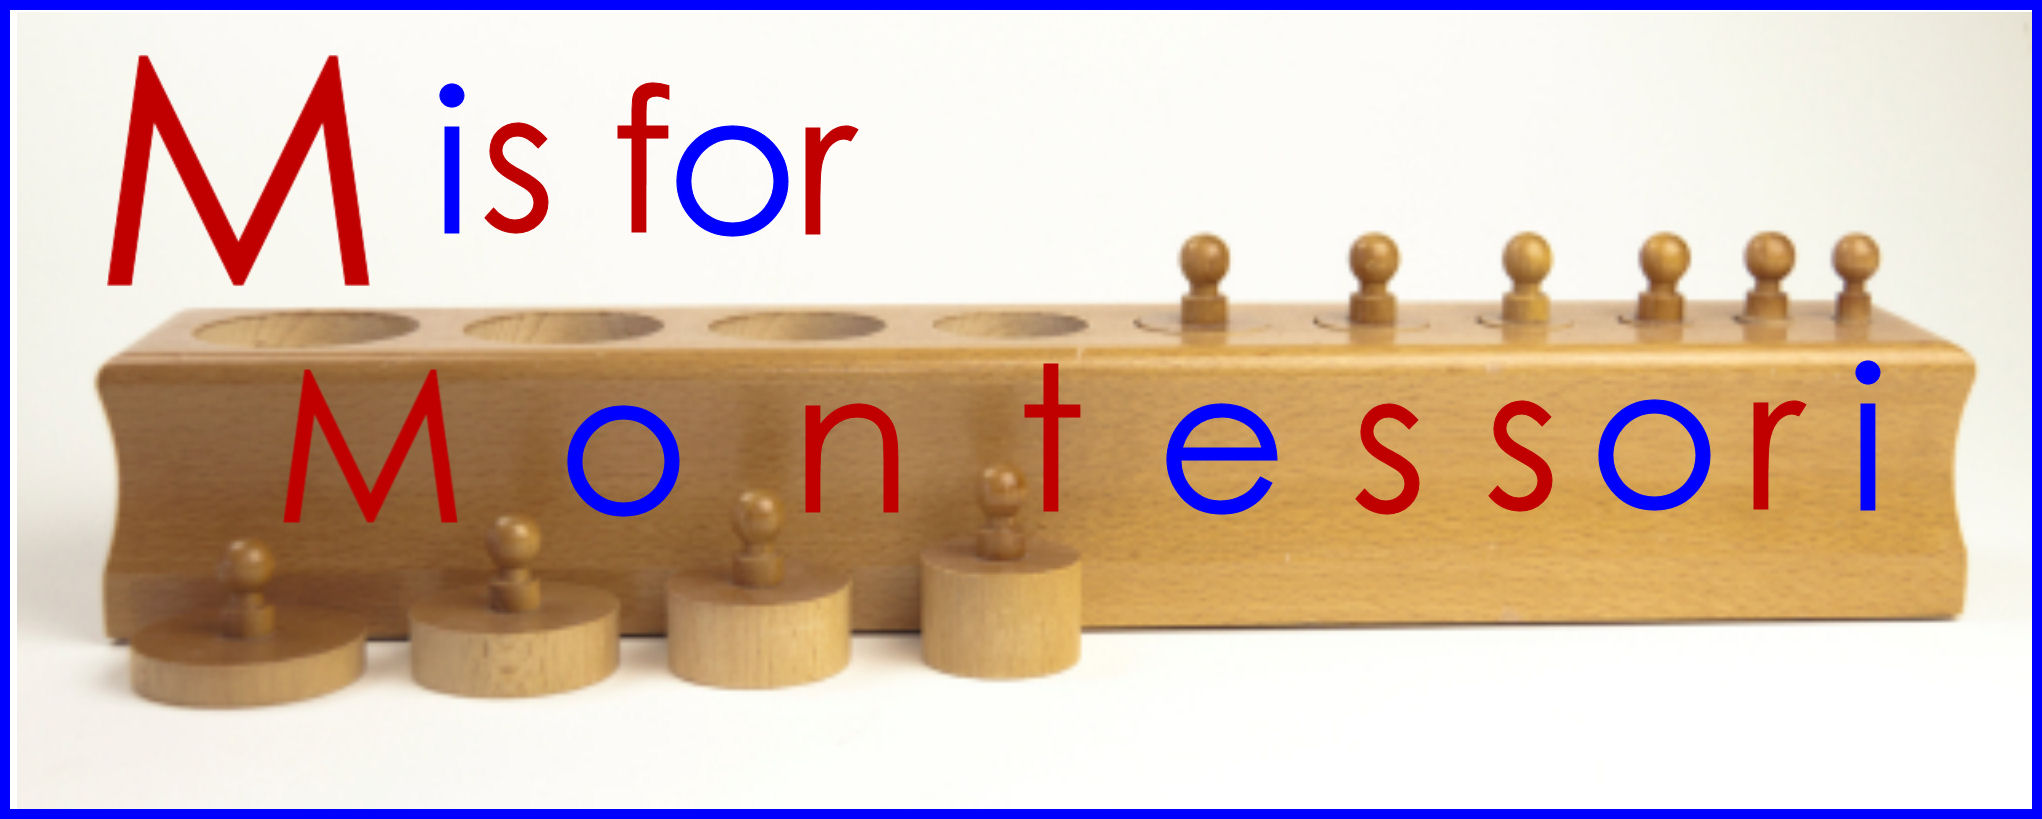 montessori today The montessori curriculum there is a framework which specifies learning outcomes and the knowledge and skills to be learned it is divided into the montessori areas of learning.